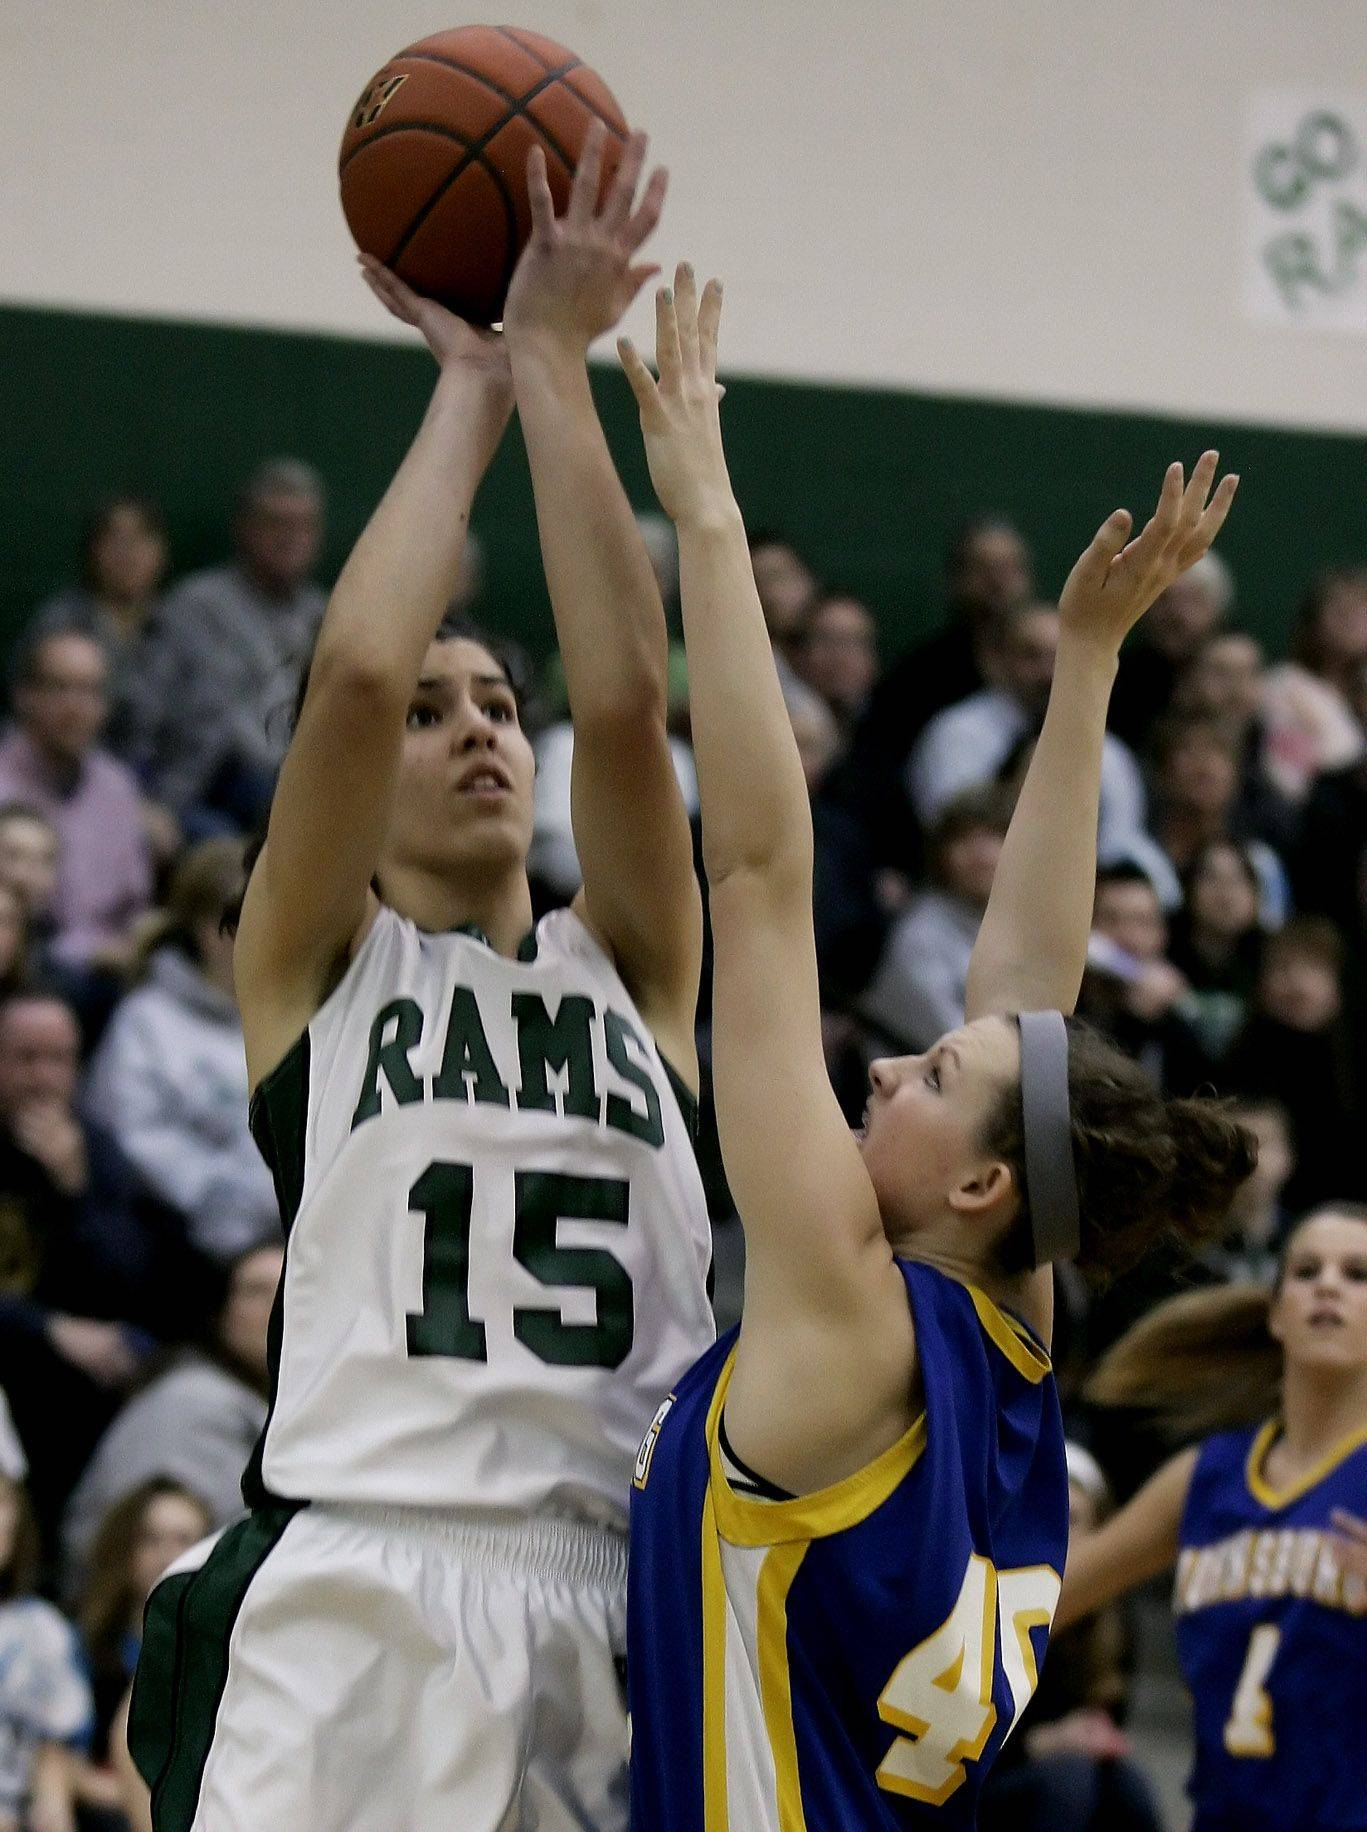 Grayslake Central's Rebekah Llorens, who poured in 37 points and grabbed 20 rebounds, skies for a shot over Johnsburg defender Ashley Schuld during the Class 3A girls sectional final Thursday at Grayslake Central.